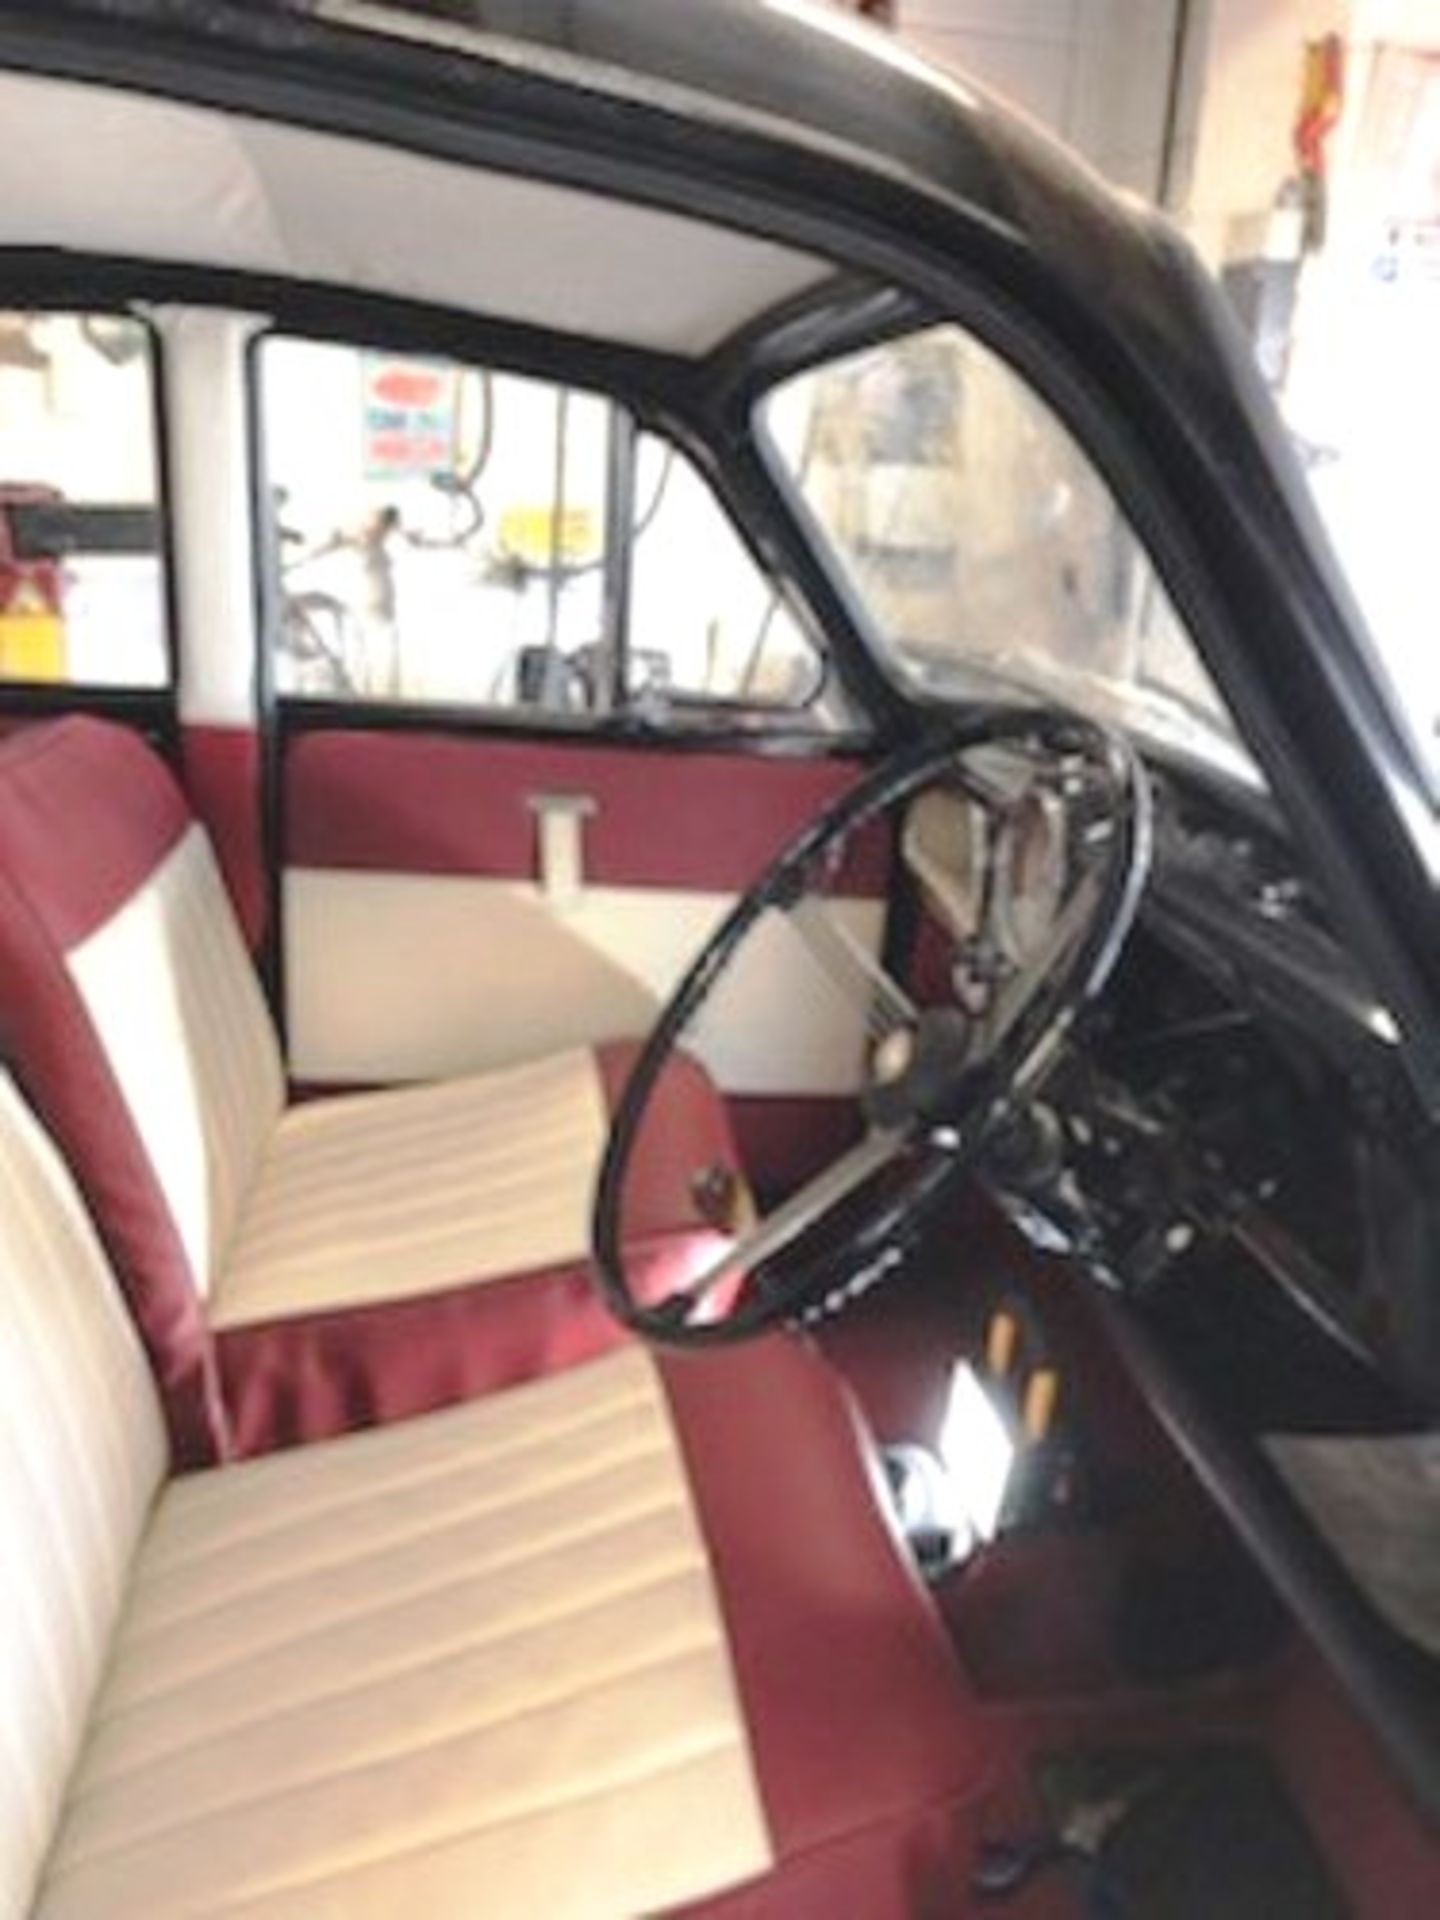 1964 Morris Minor 1000 in original black. The car has been restored with new flooring and vinyl - Image 6 of 16